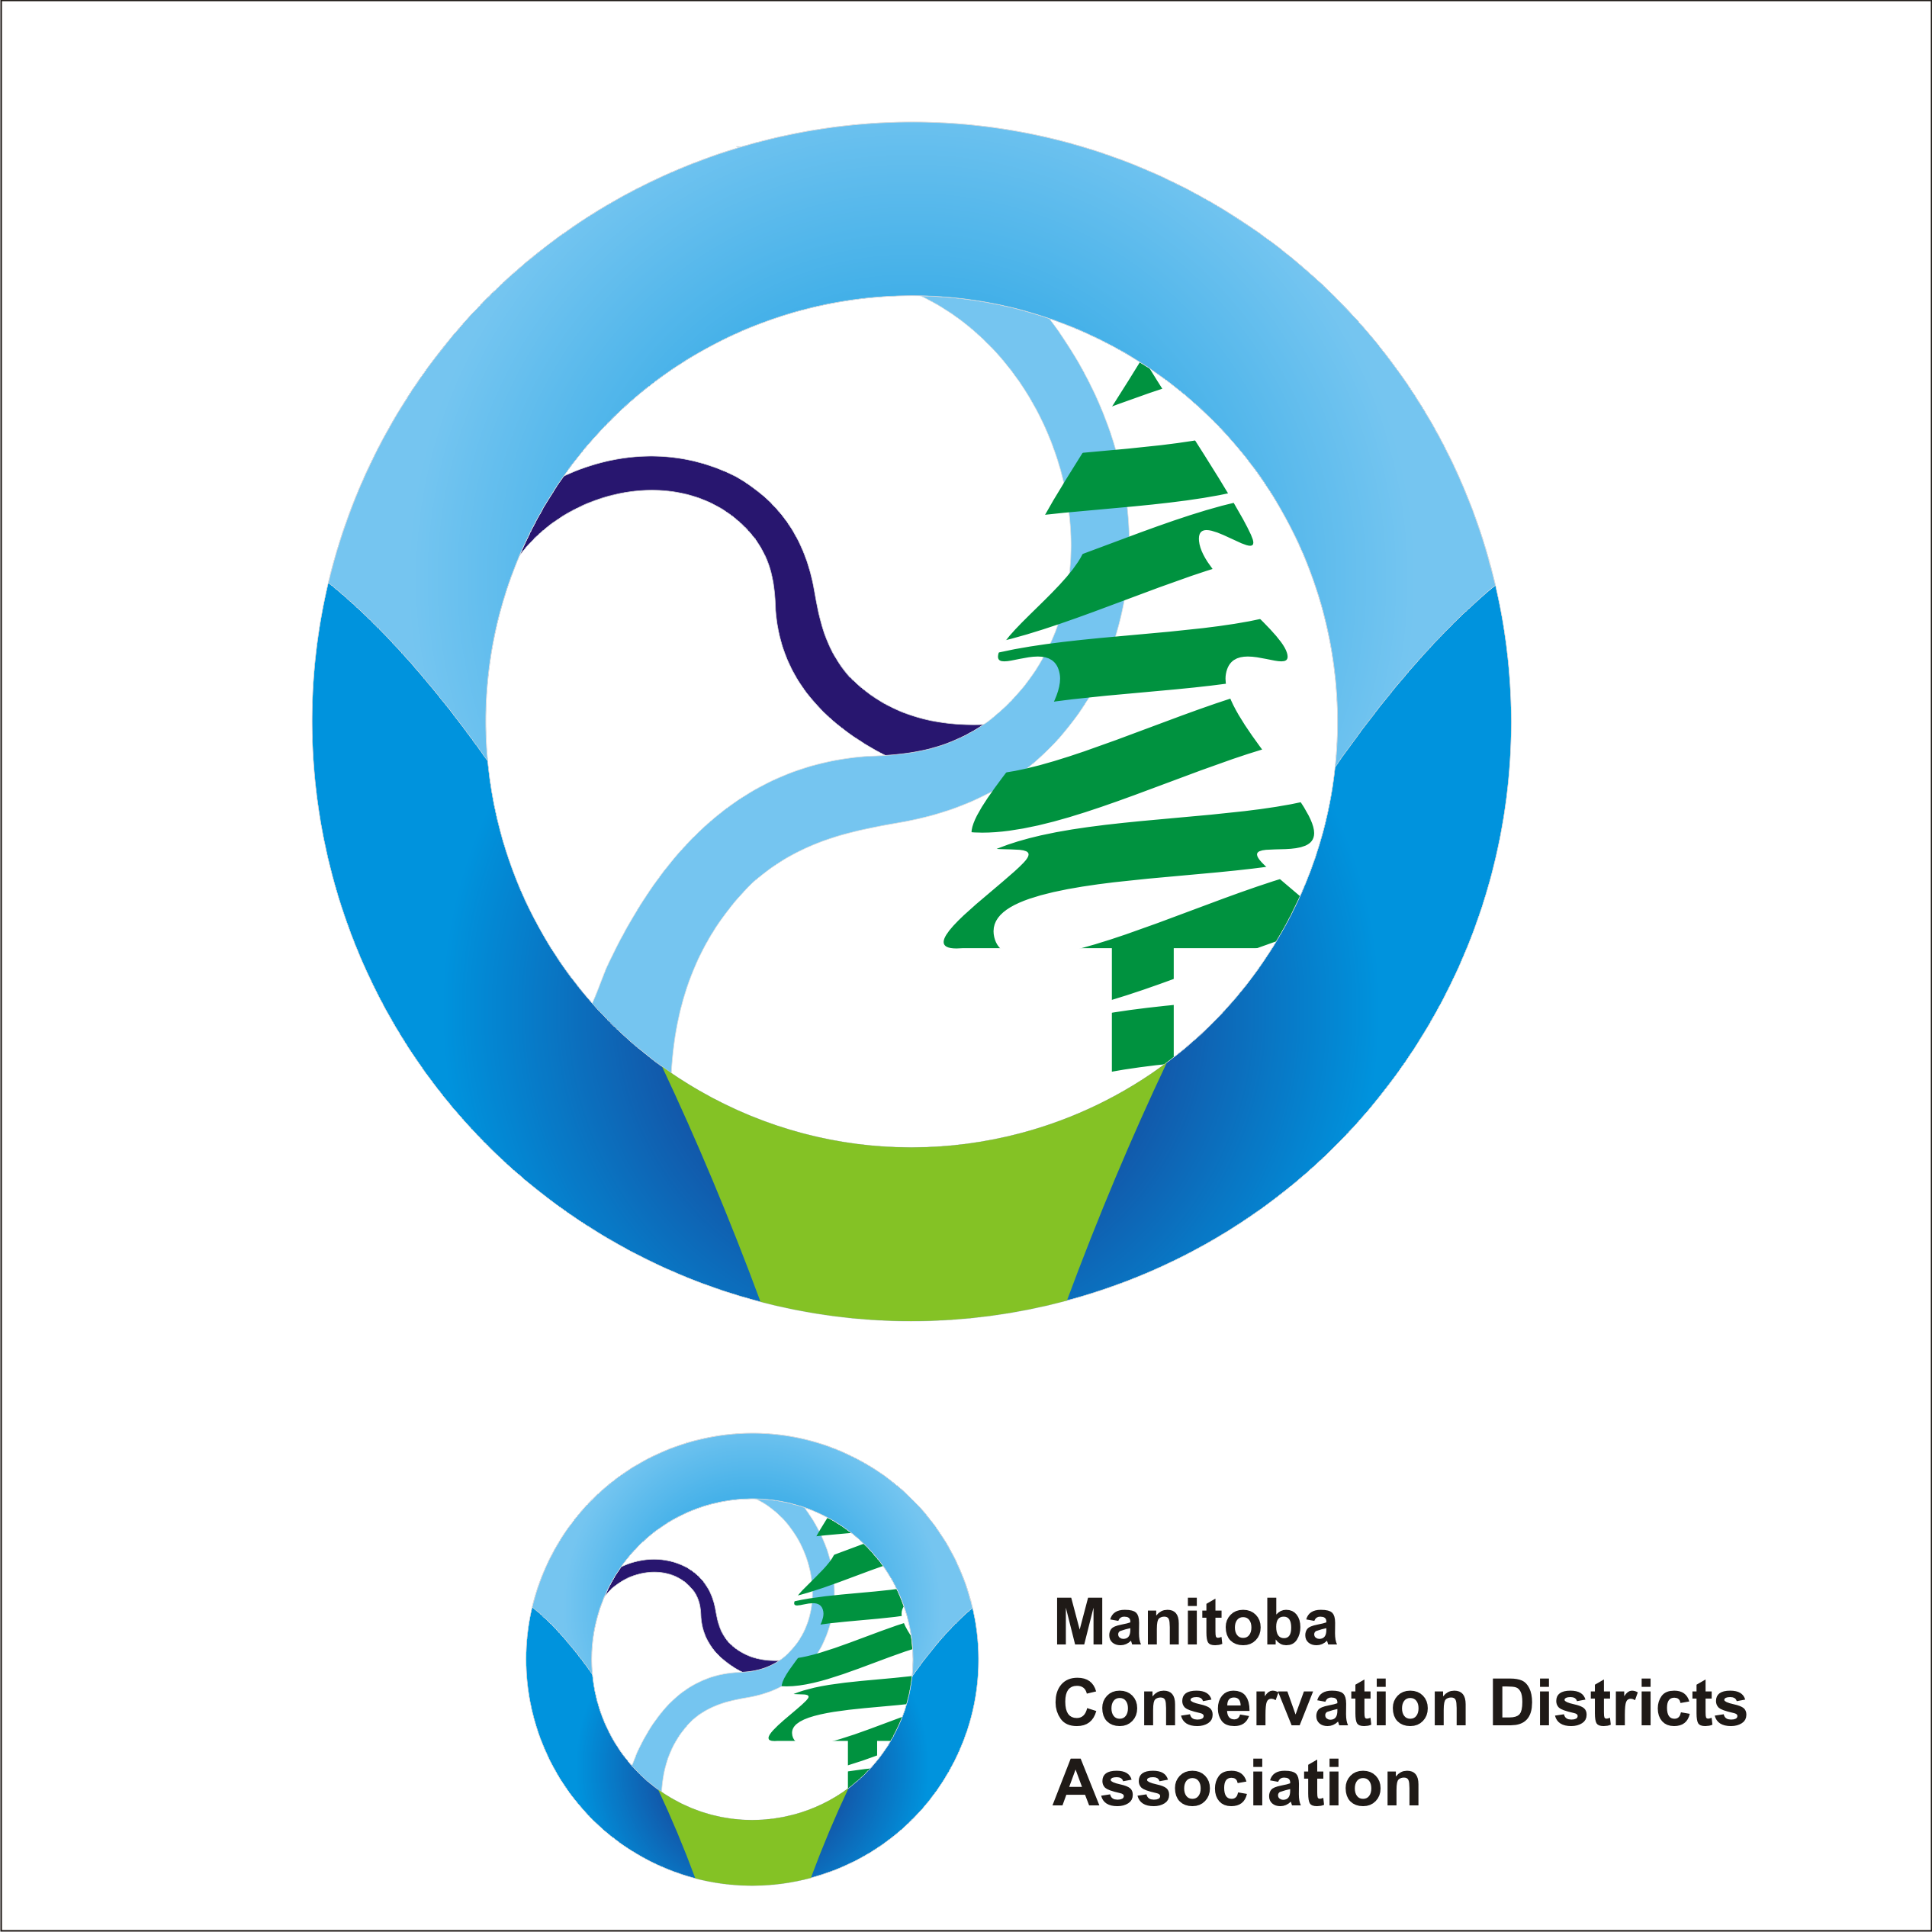 Logo Design by Private User - Entry No. 44 in the Logo Design Contest Manitoba Conservation Districts Logo Design.